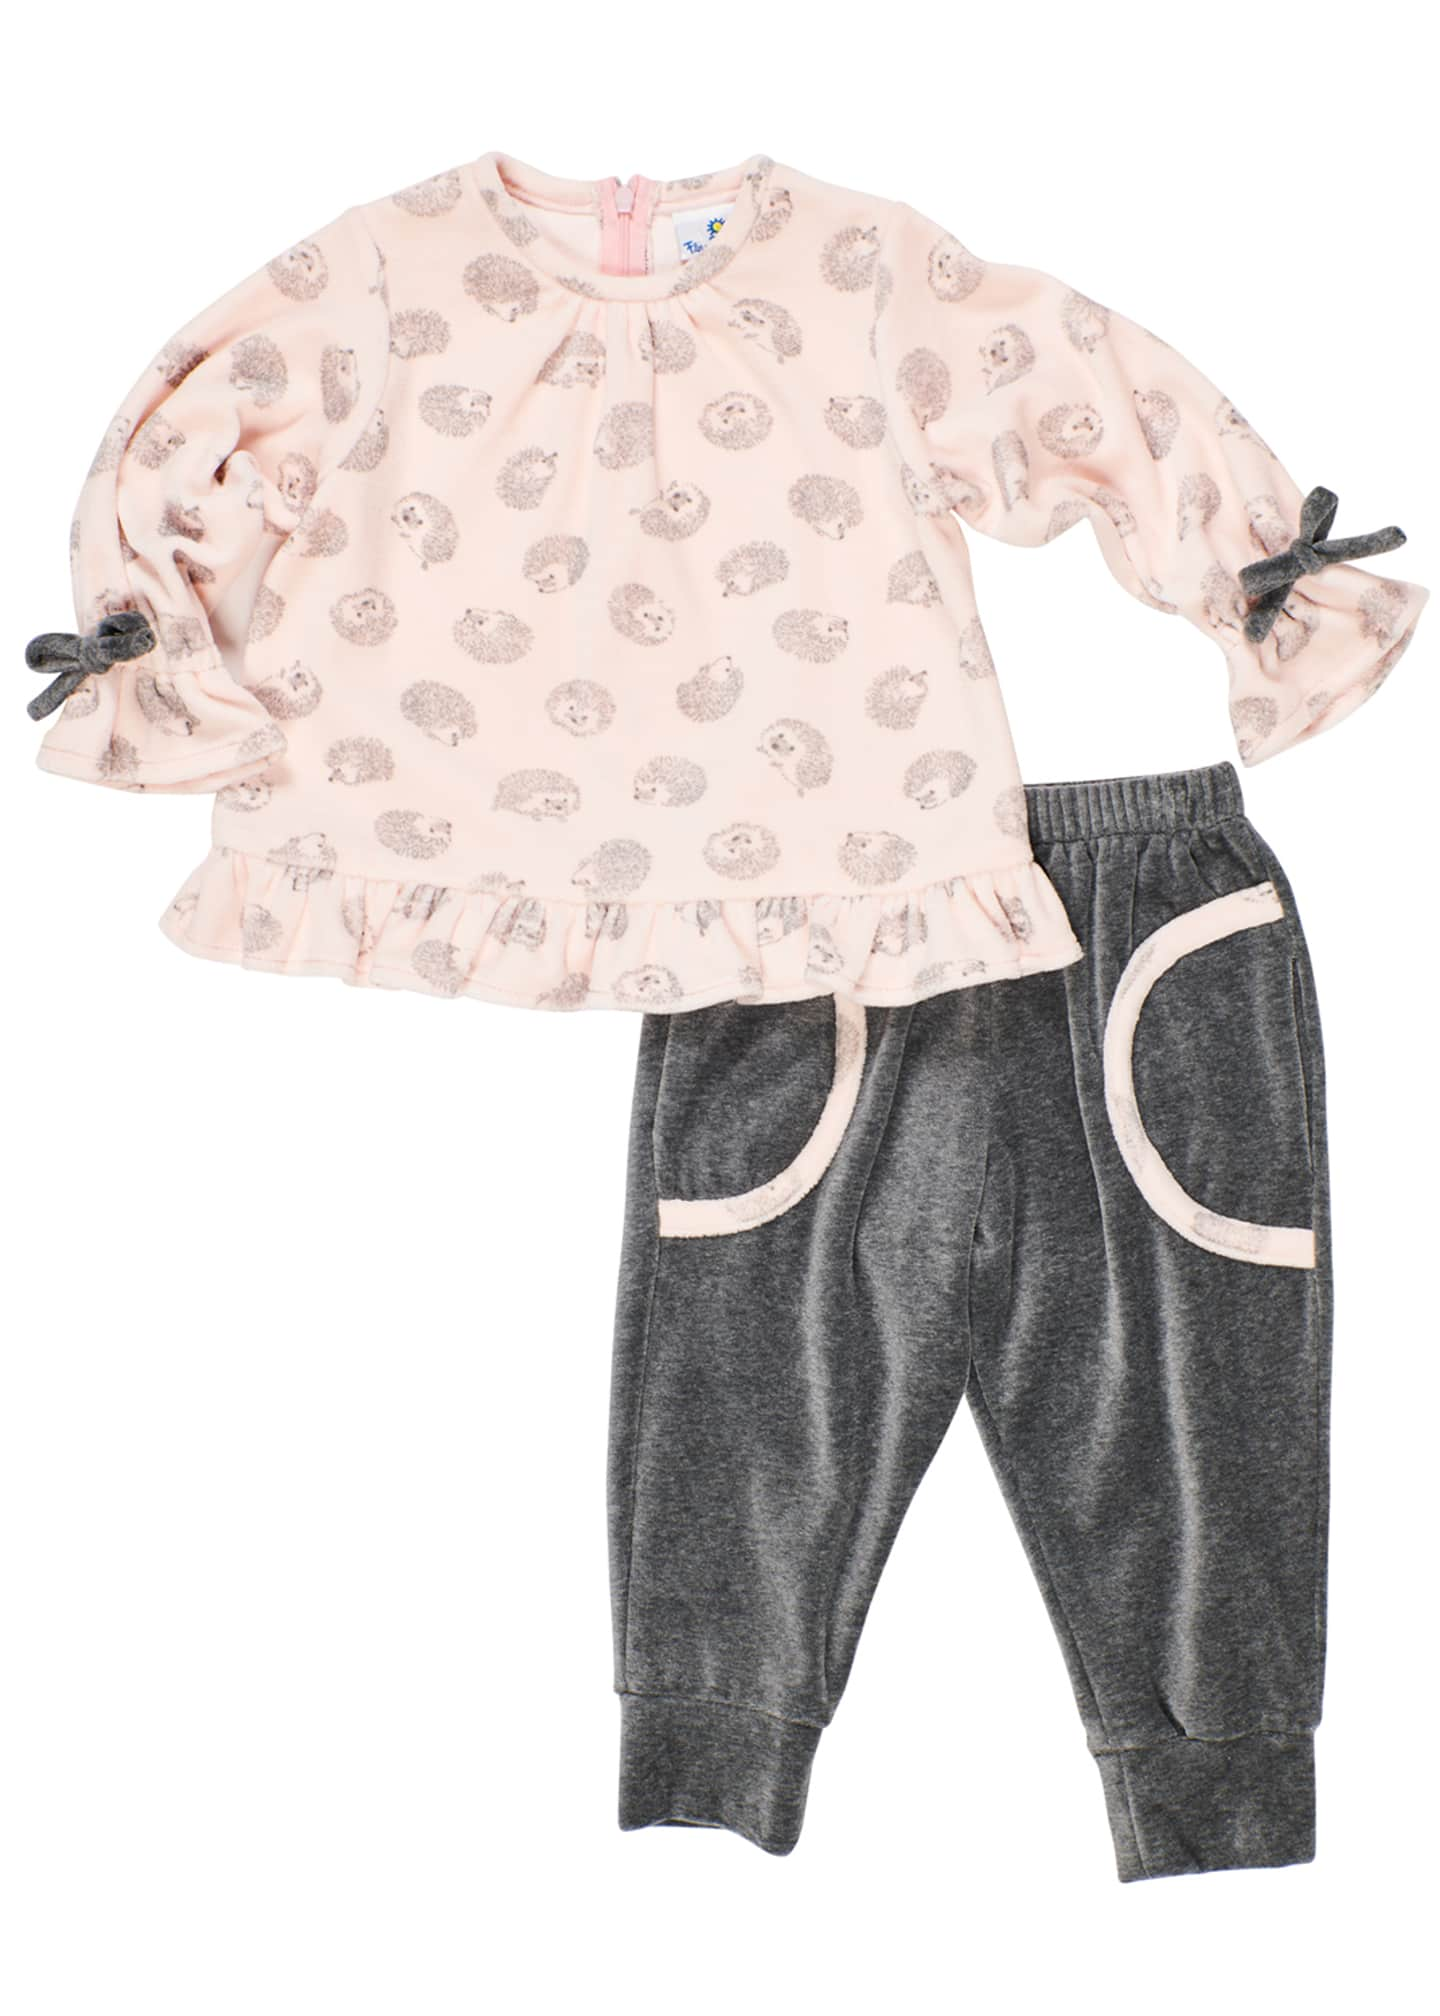 Florence Eiseman Girl's Velour Hedgehog-Print Top w/ Matching